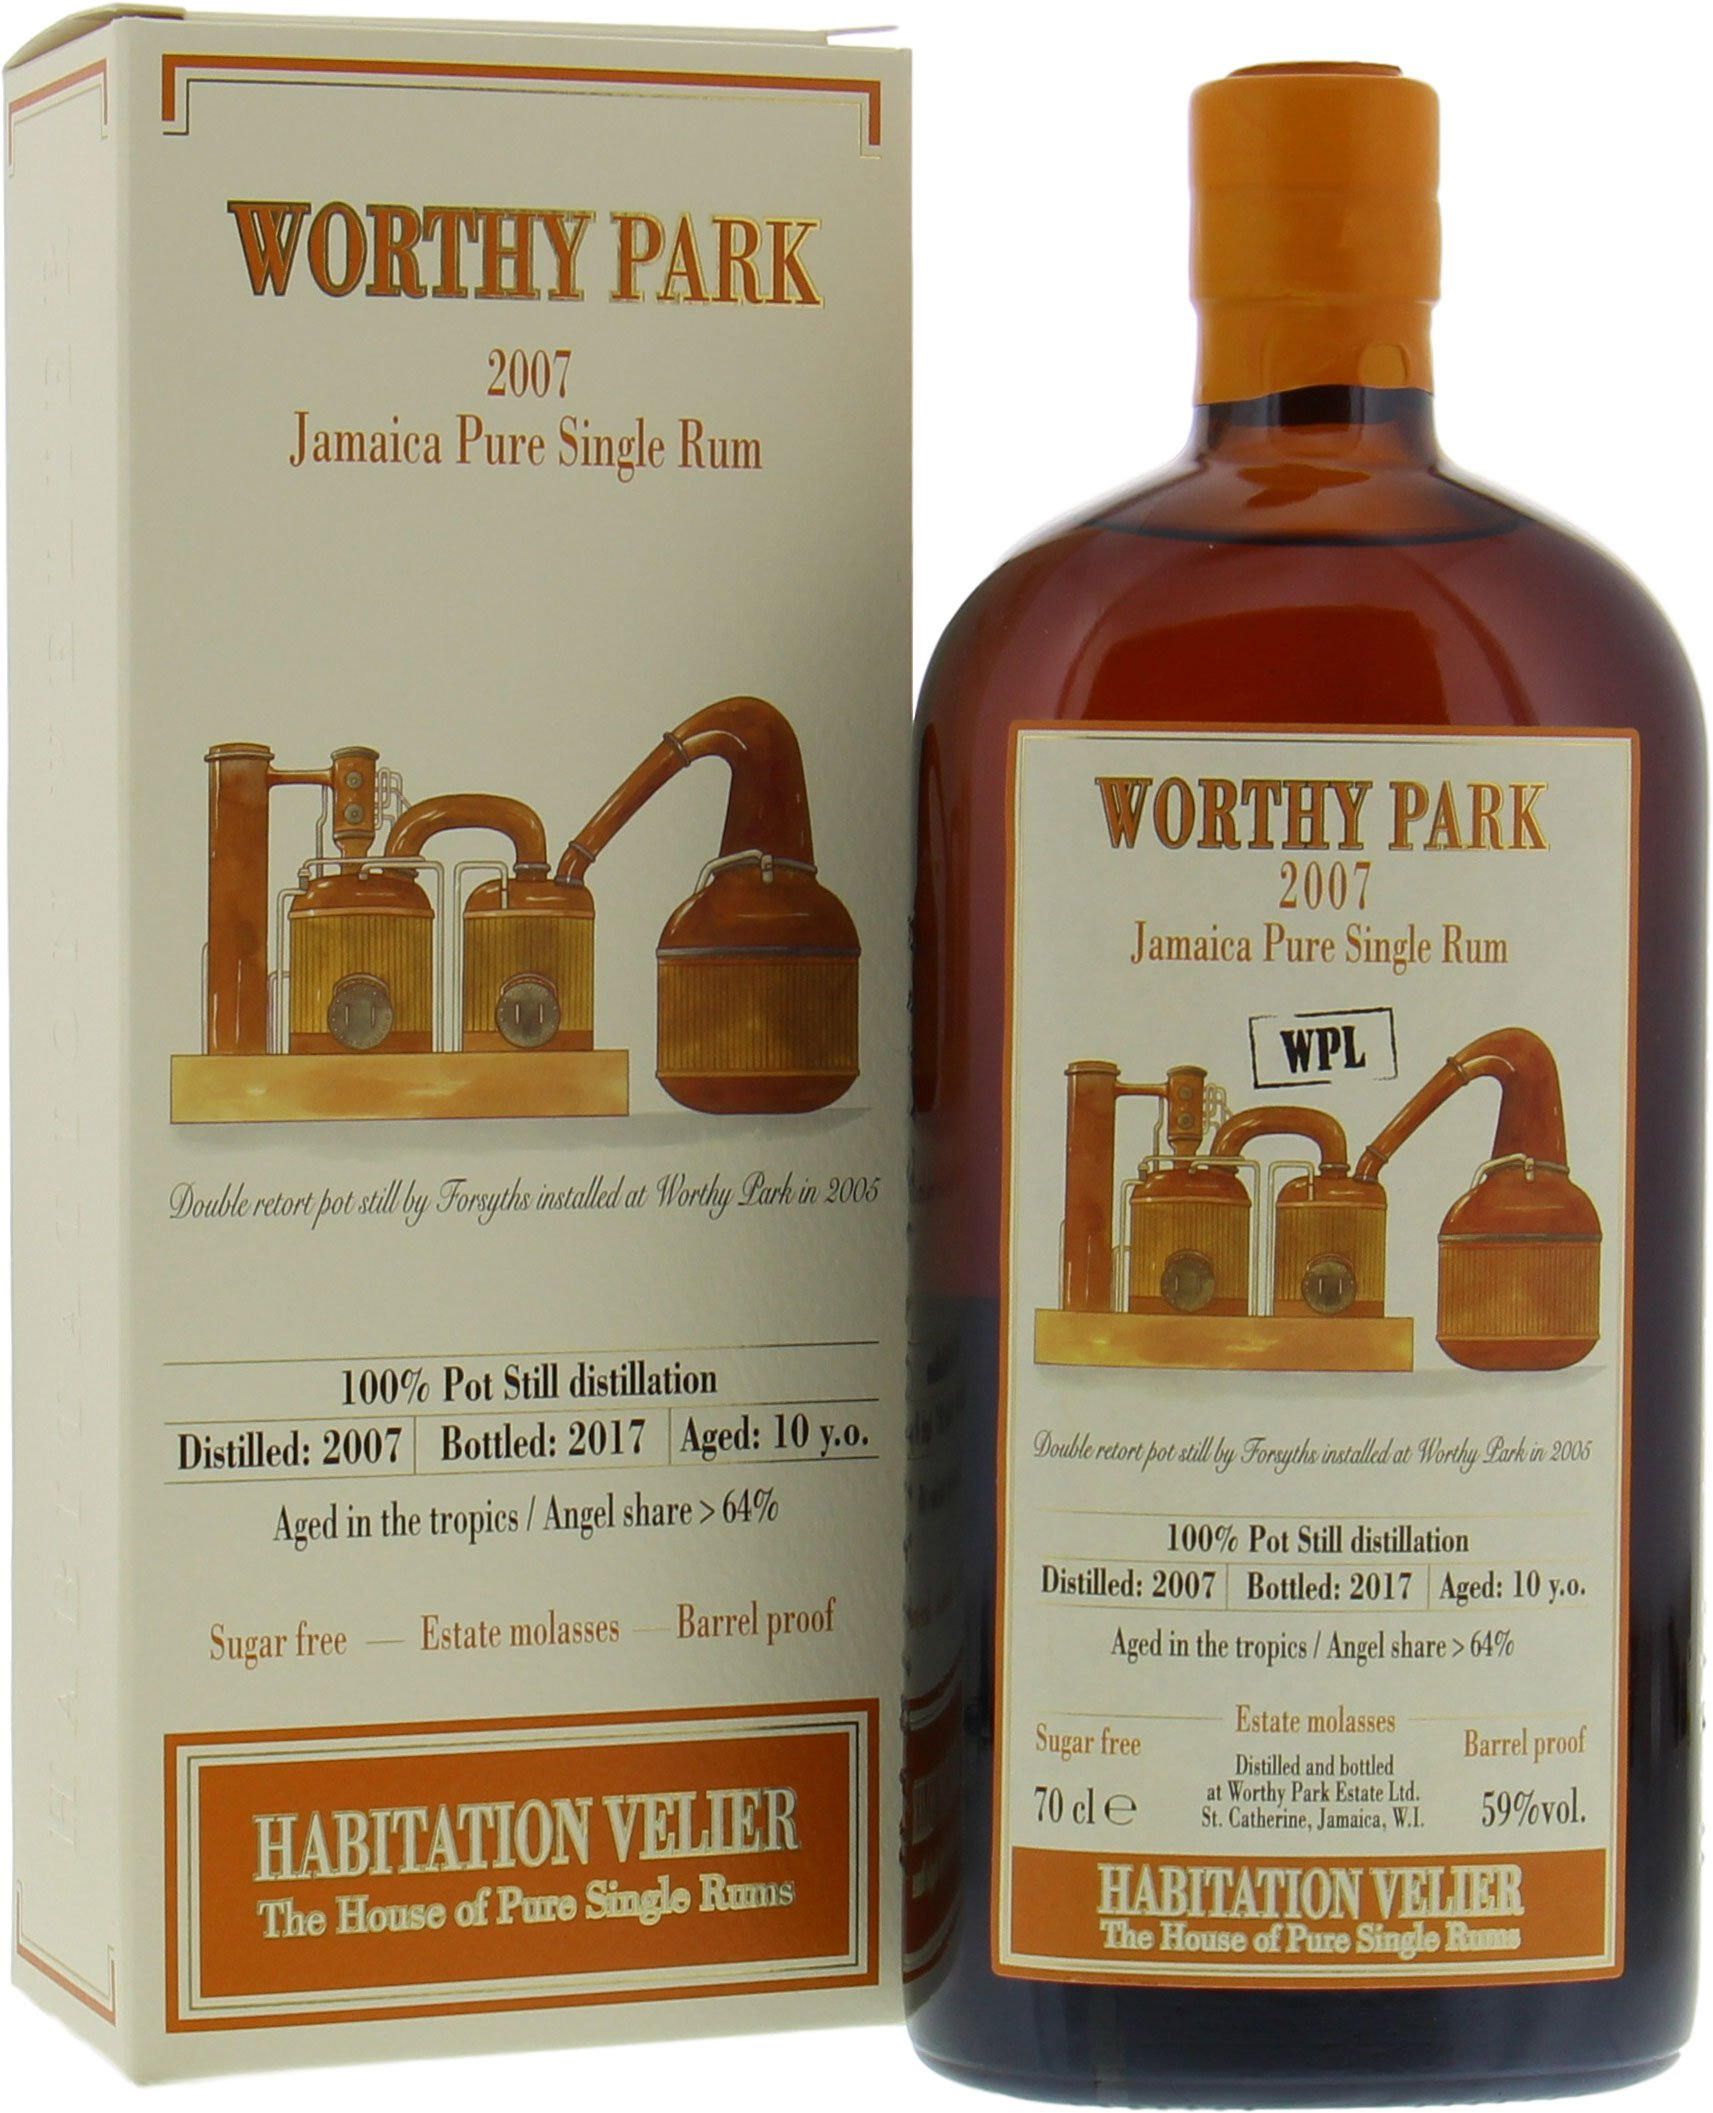 Worthy Park - 10 Years Old Habitation Velier 59% 2007